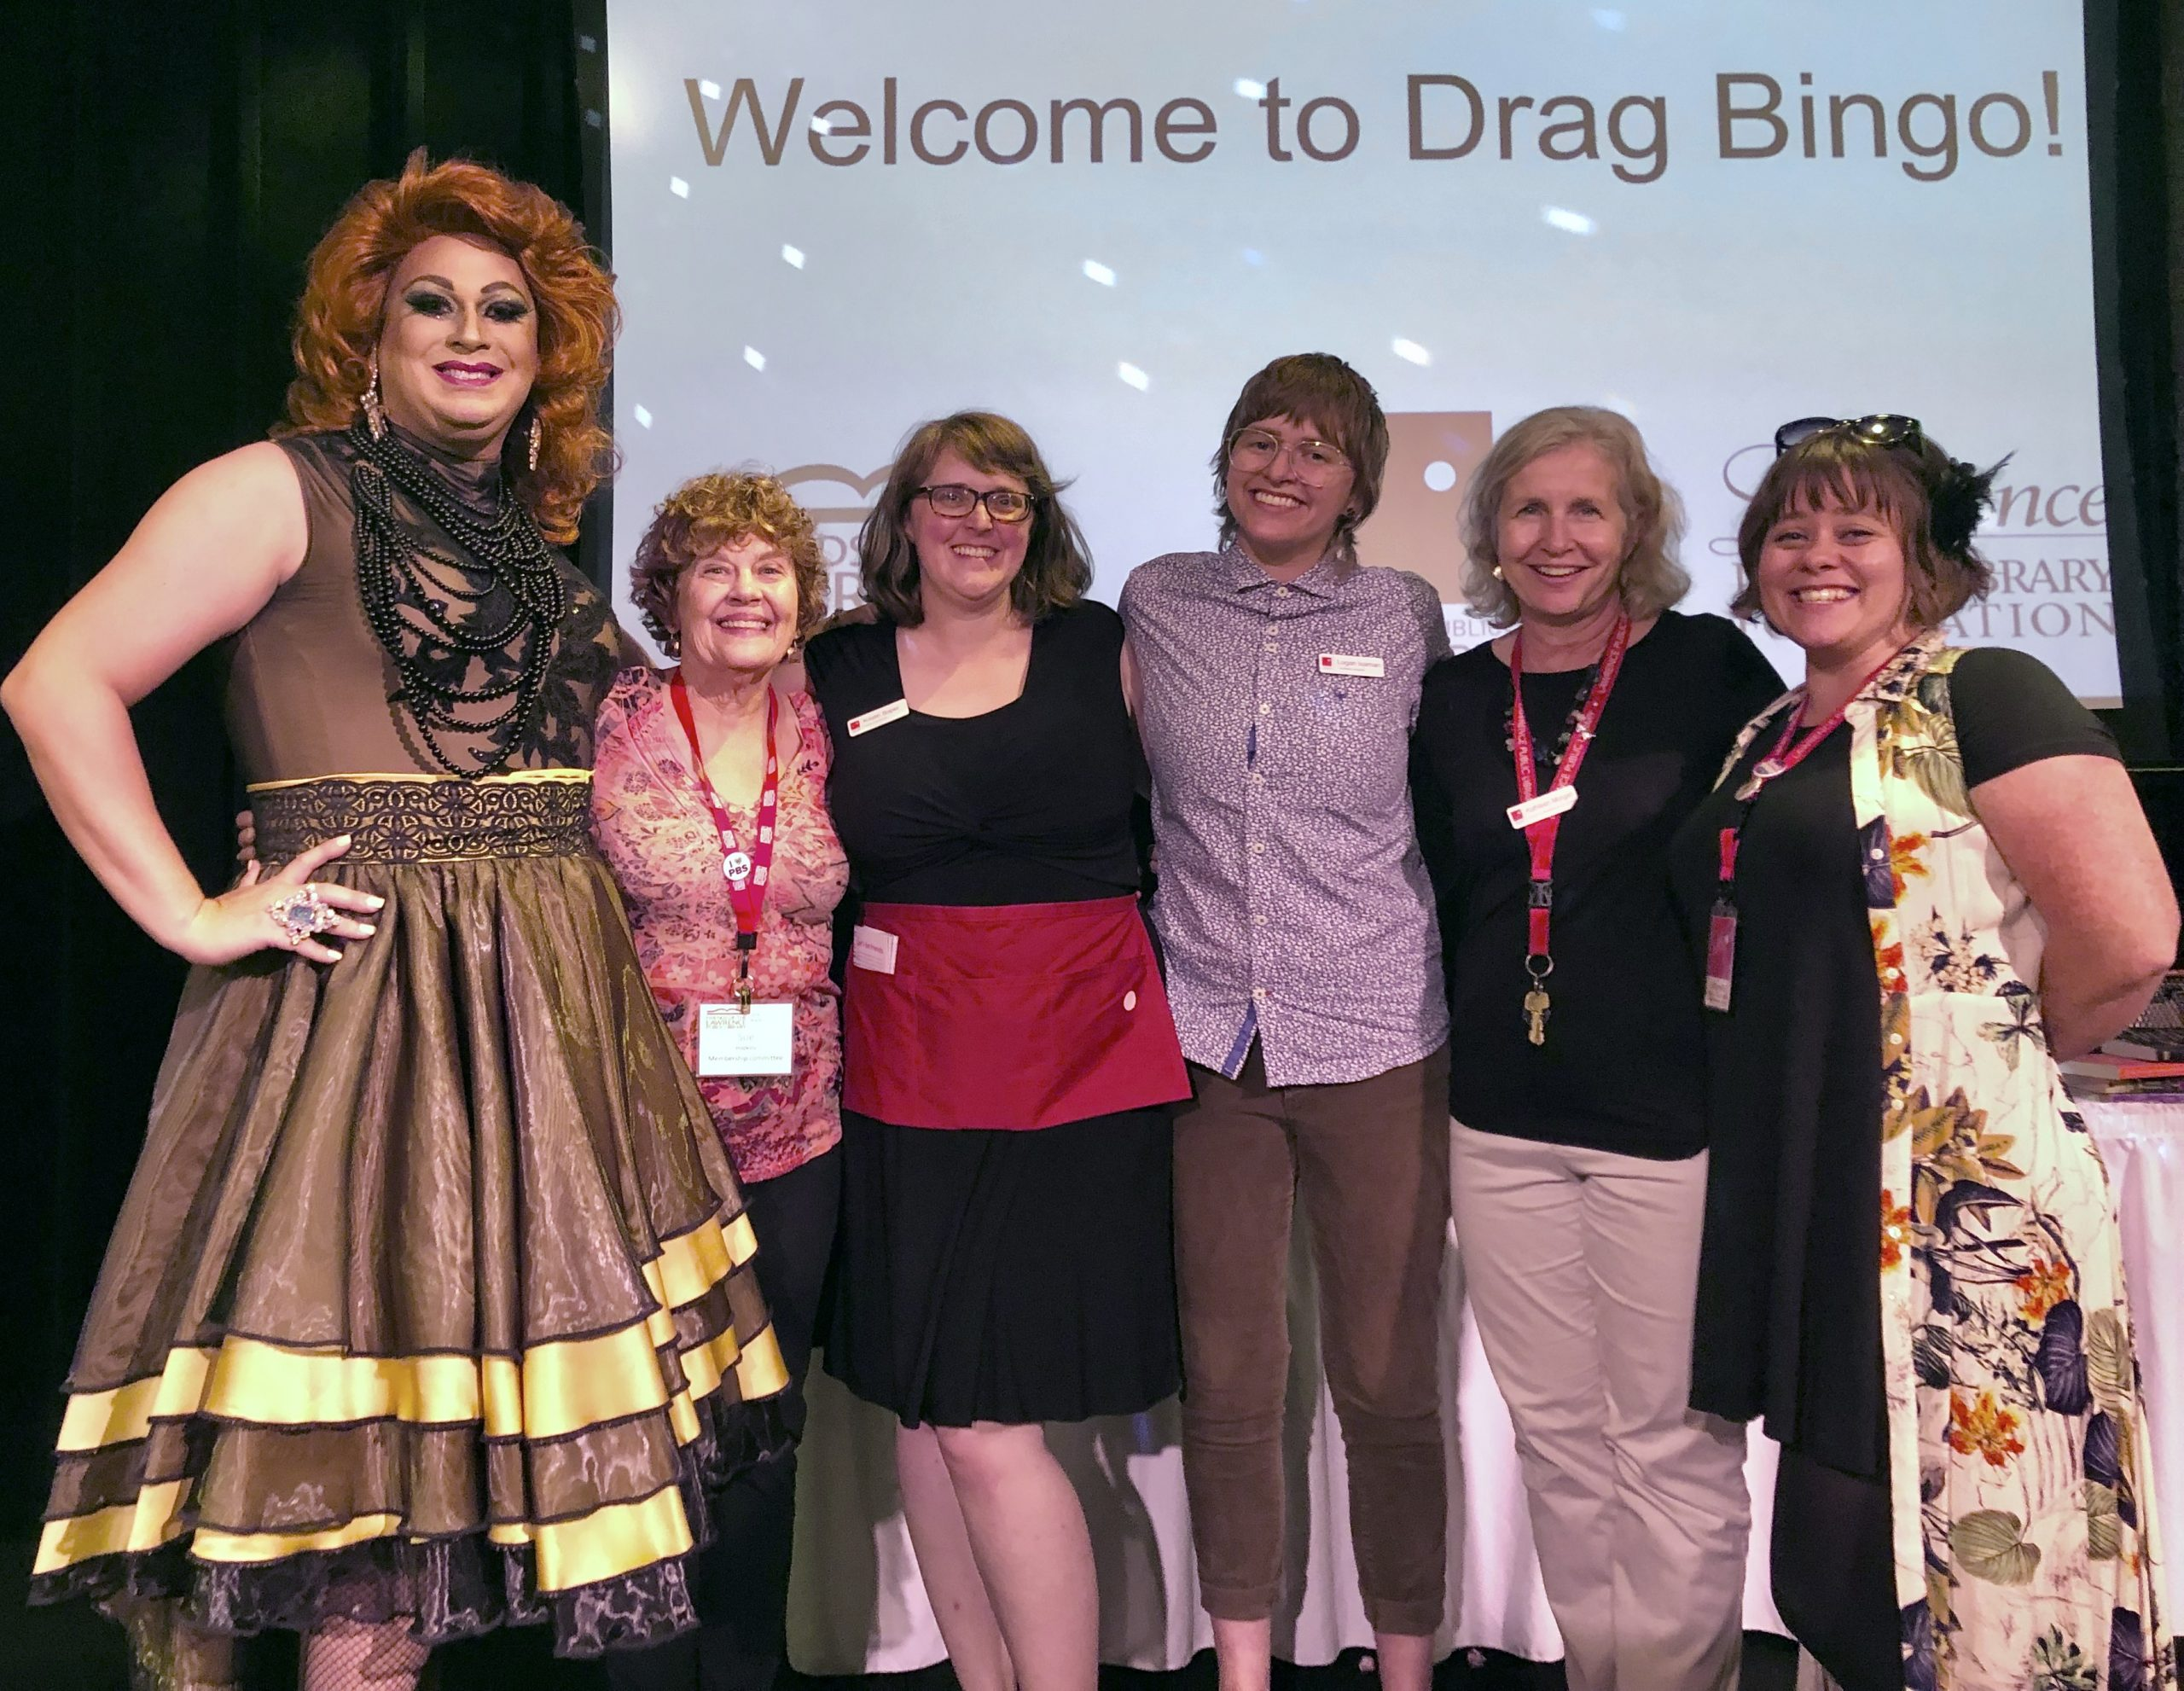 Drag Bingo event